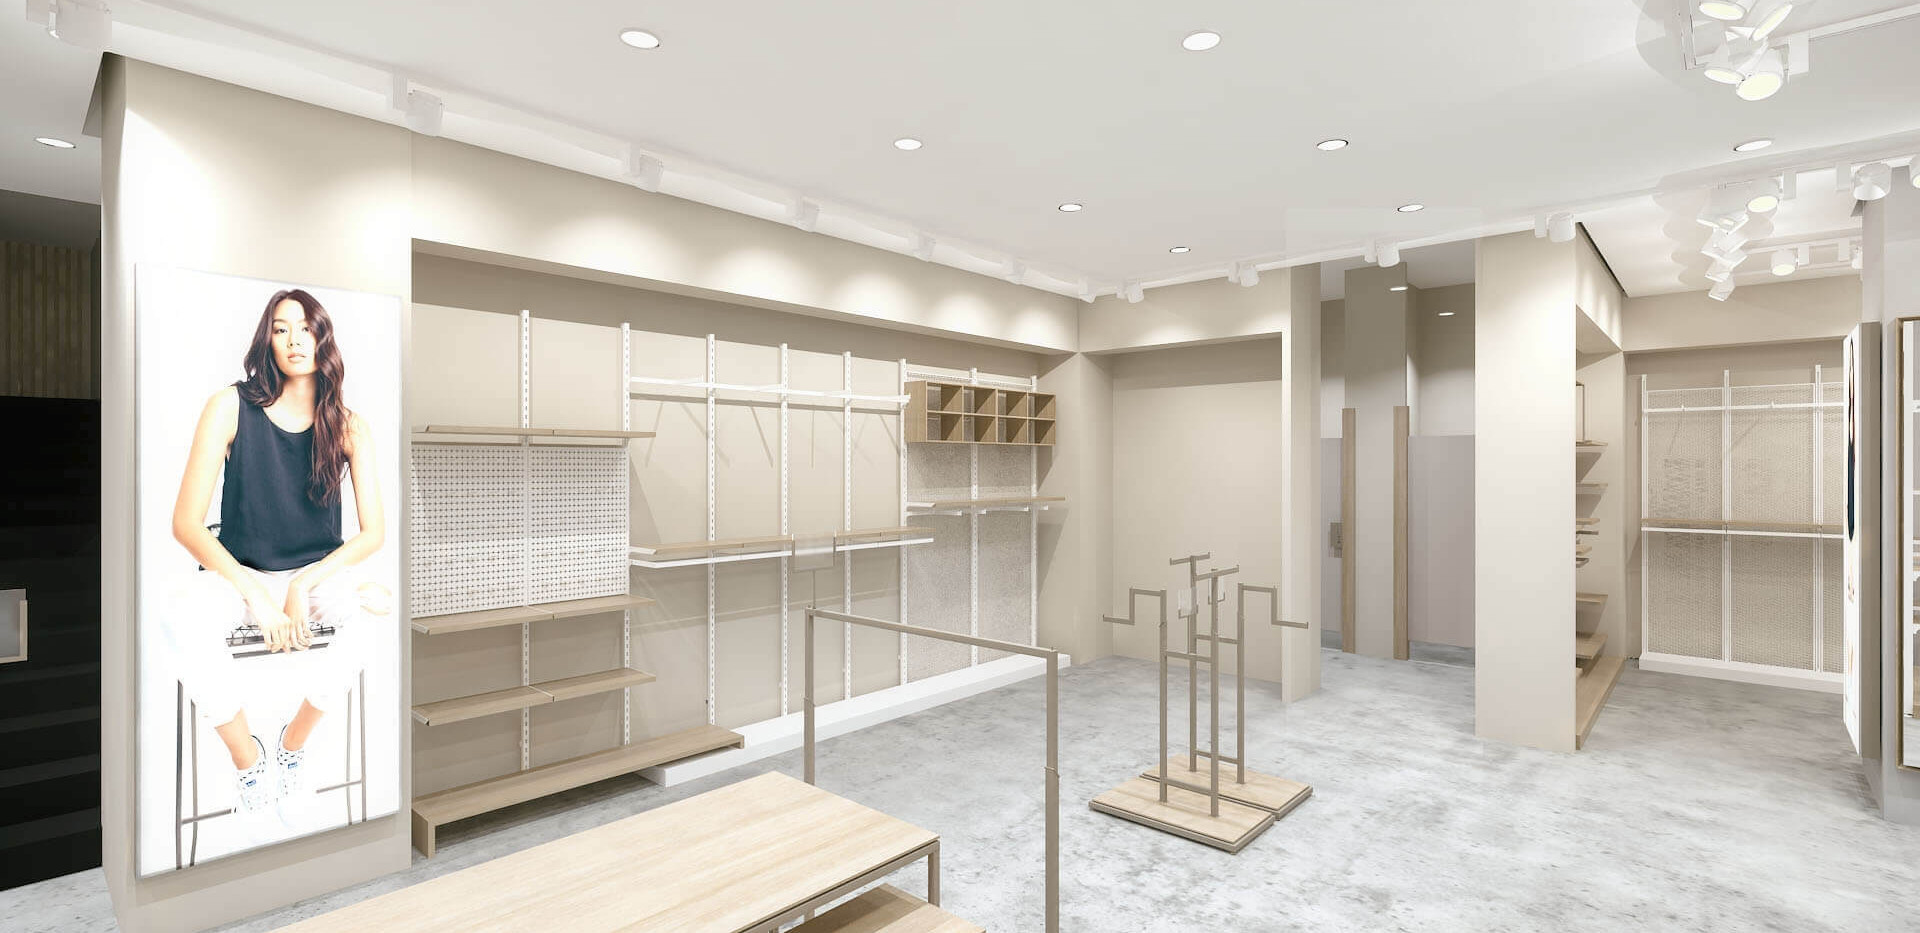 Cinici_-_Fashion_Store_Shop_Design-15.jp